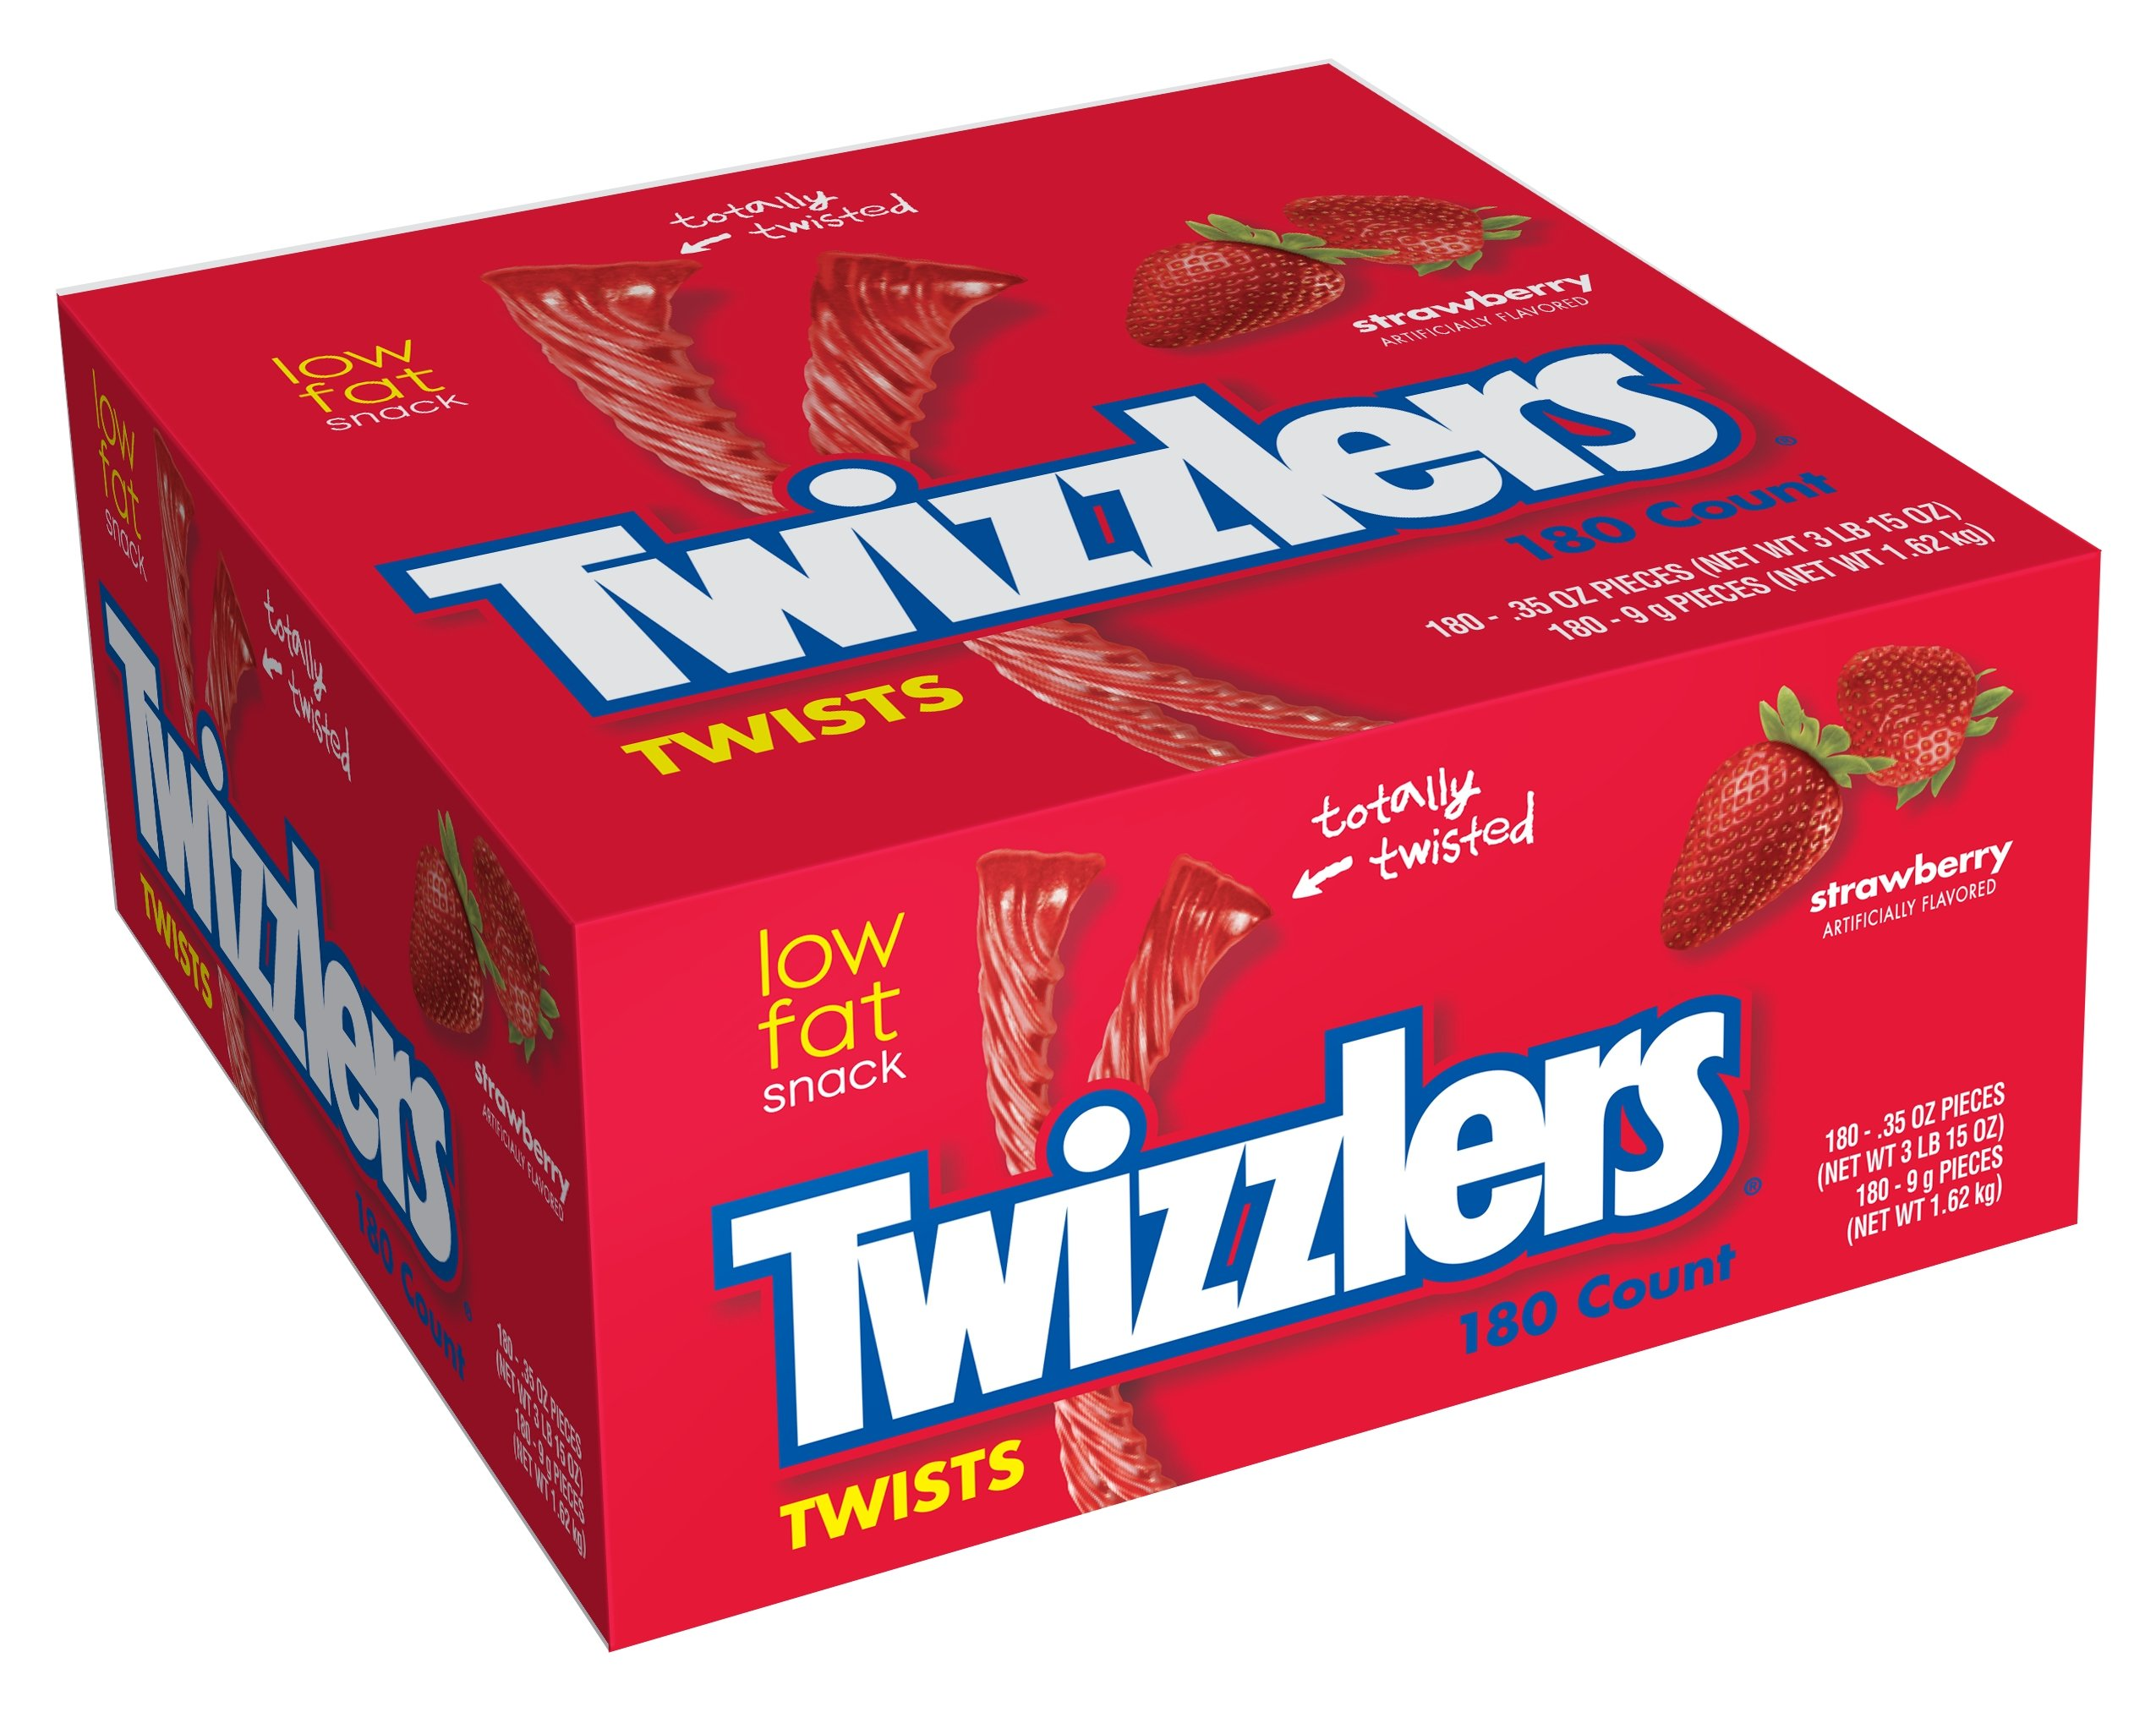 TWIZZLERS Licorice Candy, Strawberry, 180 Count (Pack of 2) by Twizzlers